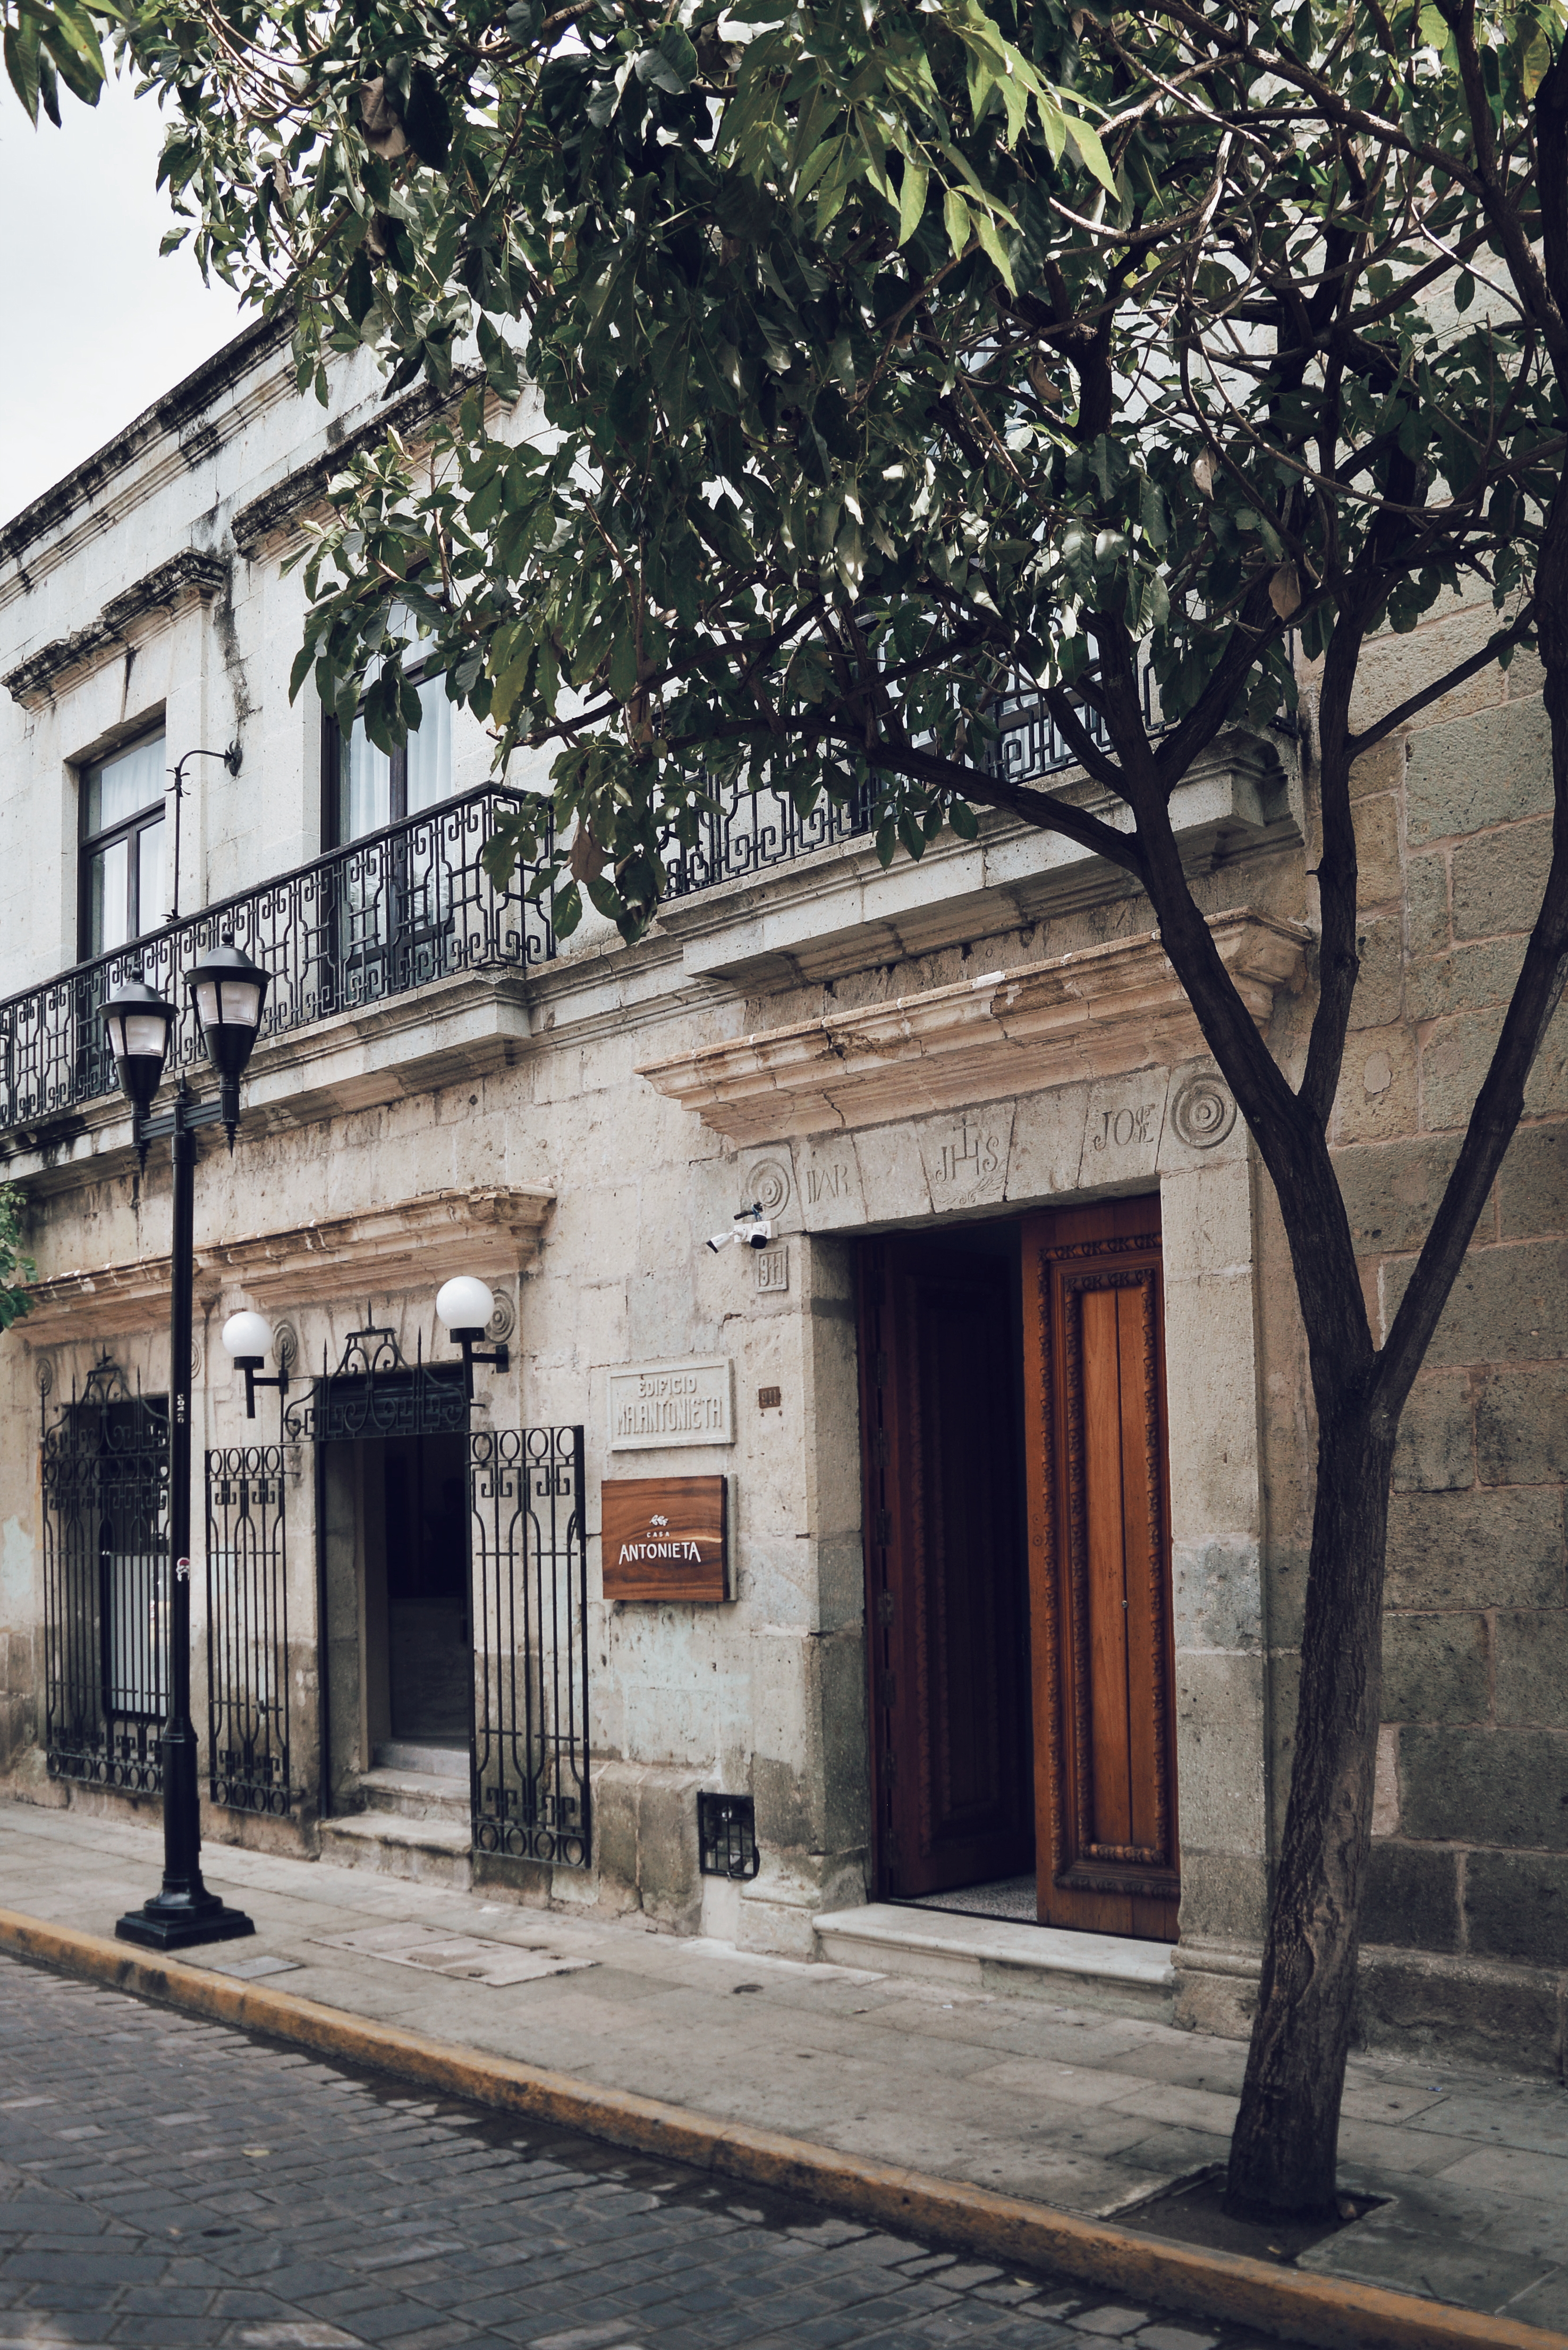 Casa Antonieta in Oaxaca Is a Chic Boutique Hotel With a Historic Feel